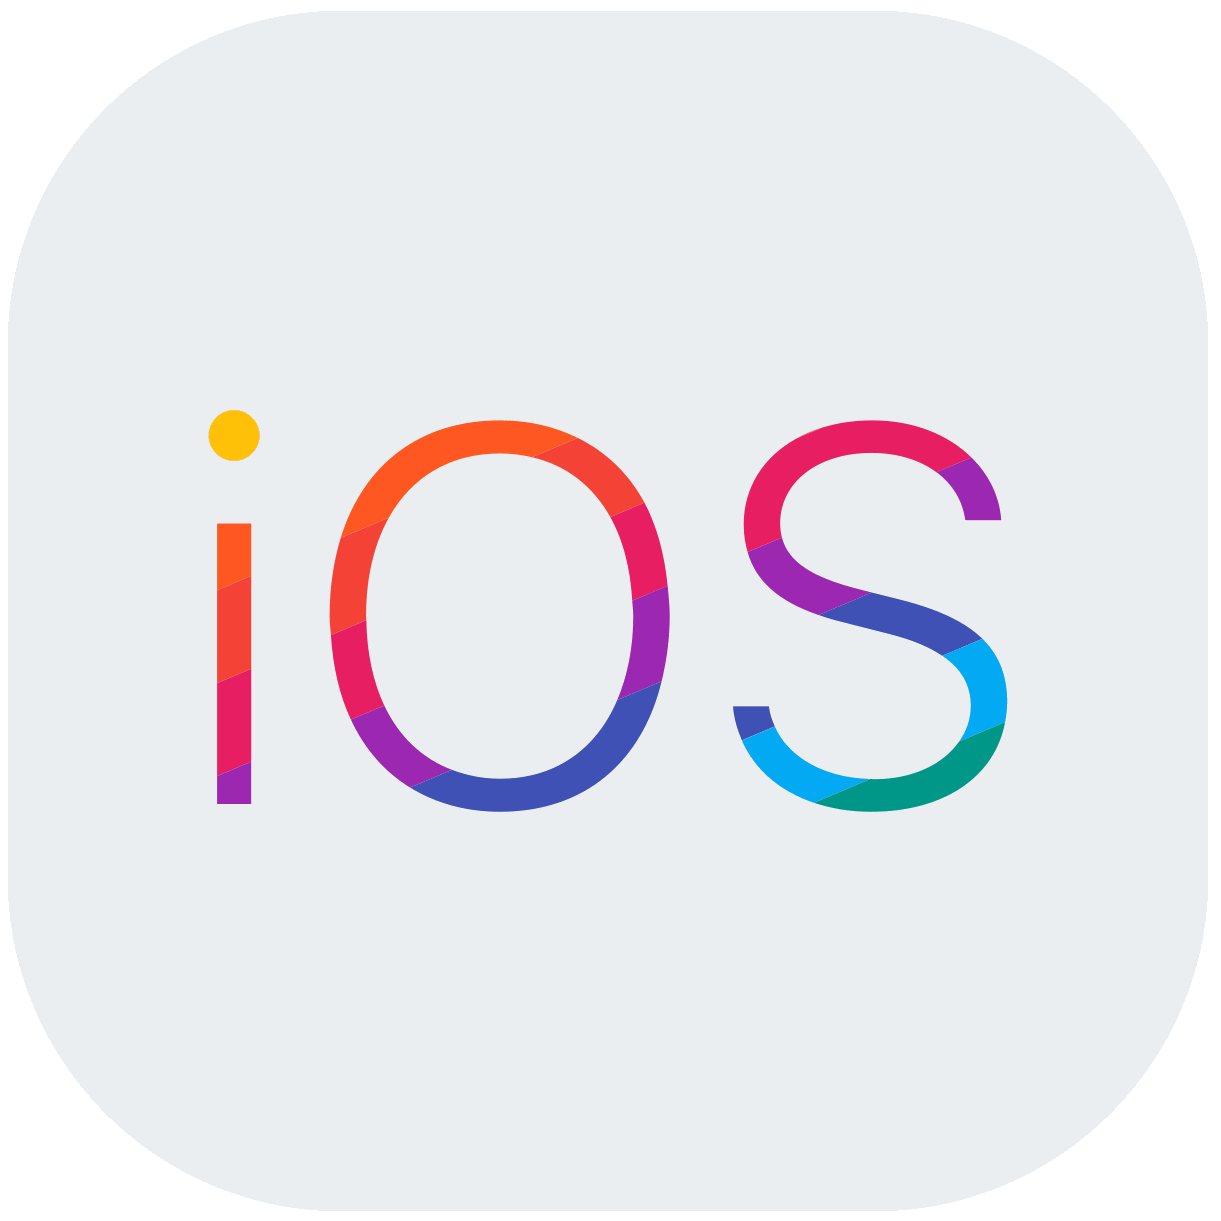 ios-development-logo